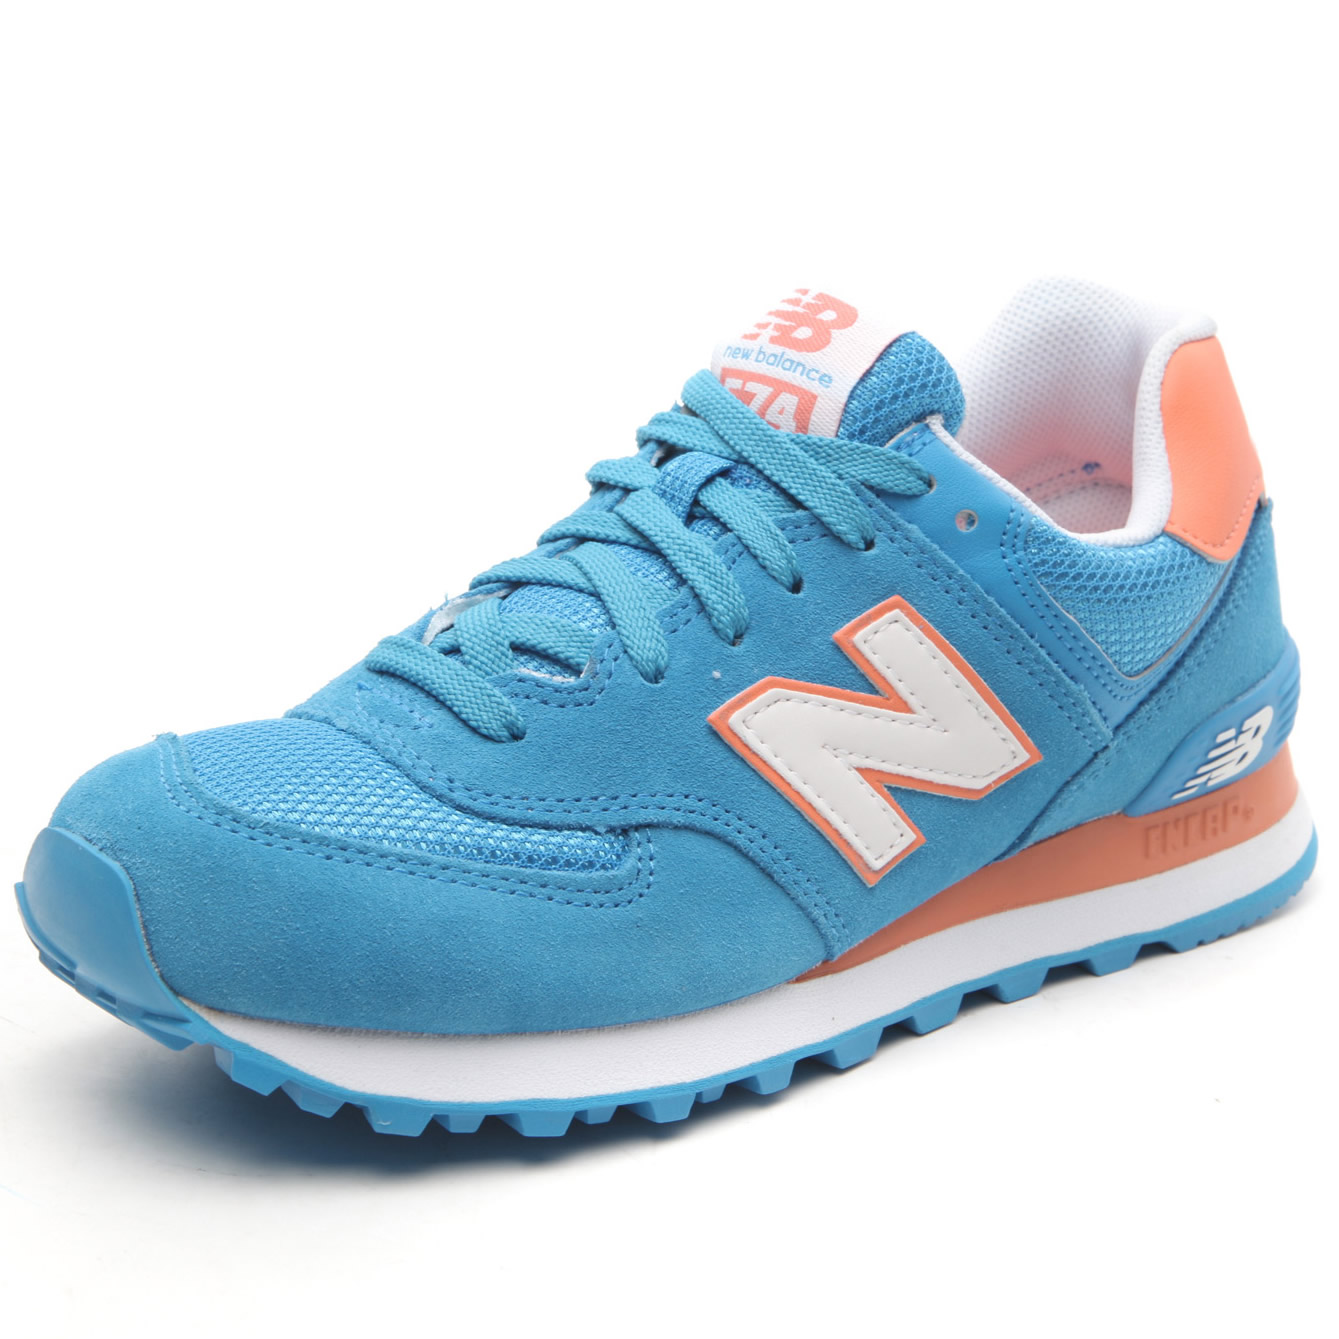 New balance 574 bing for T1 bordeaux location